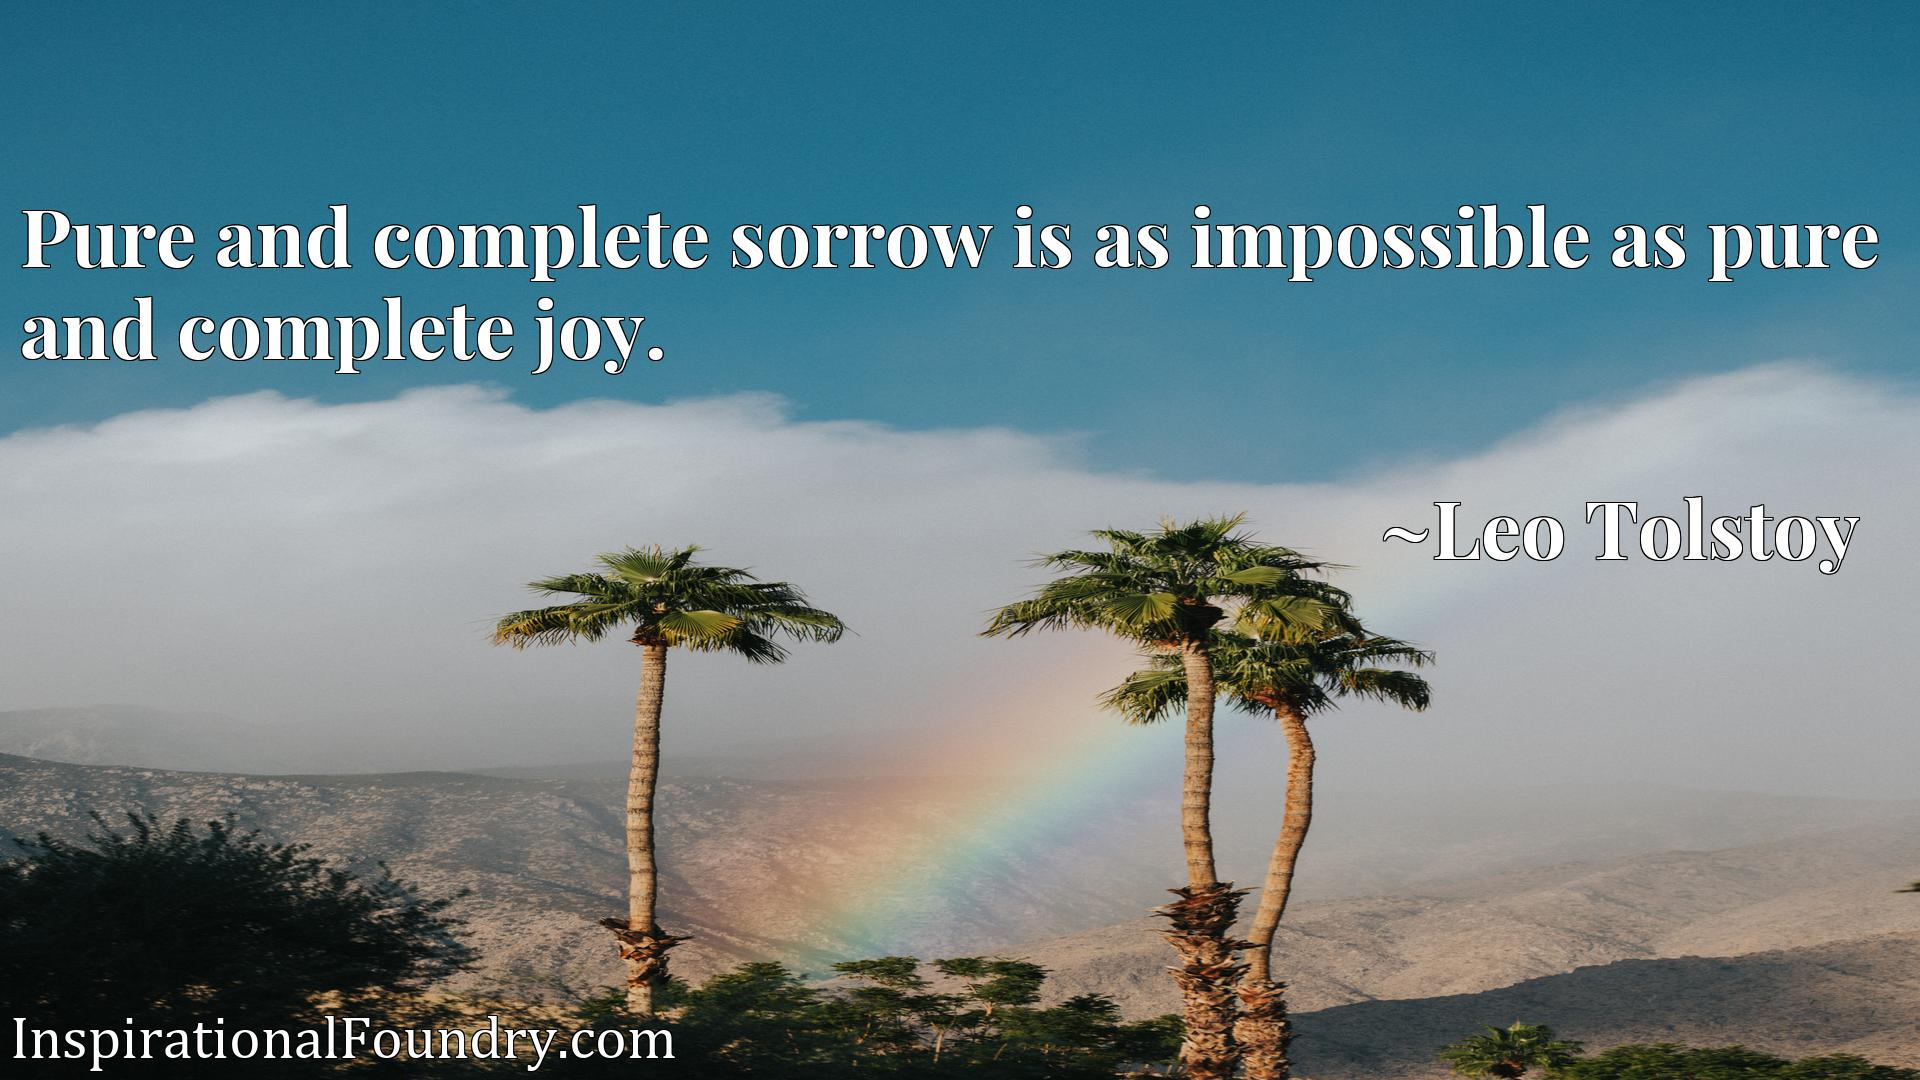 Pure and complete sorrow is as impossible as pure and complete joy.